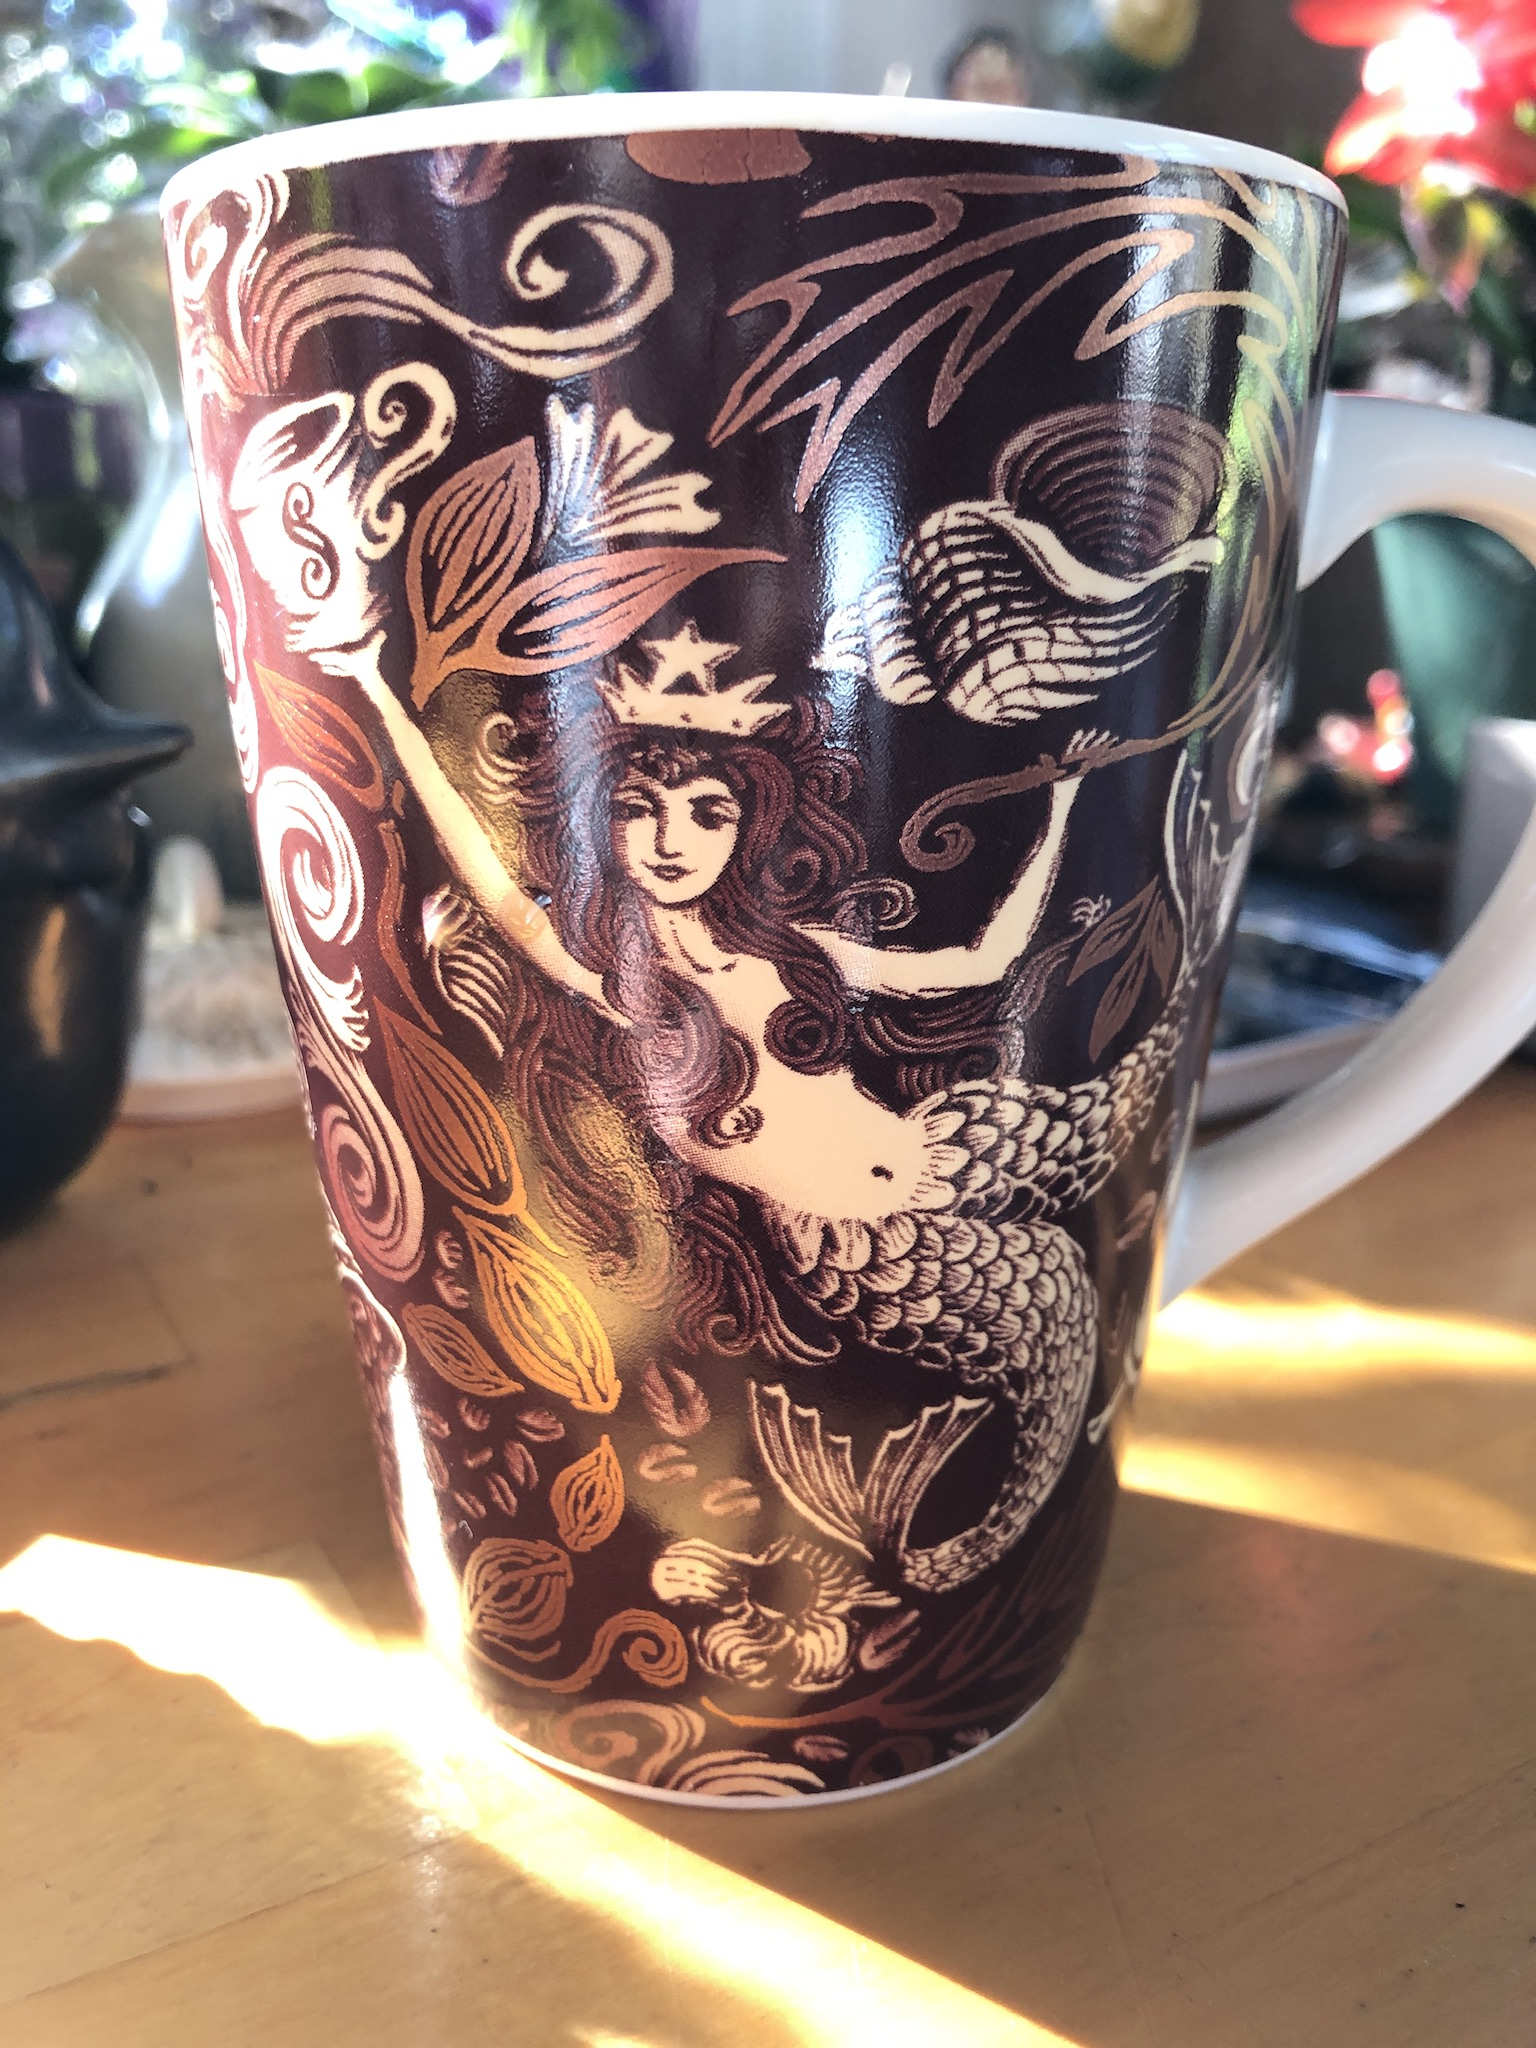 Mermaid cup